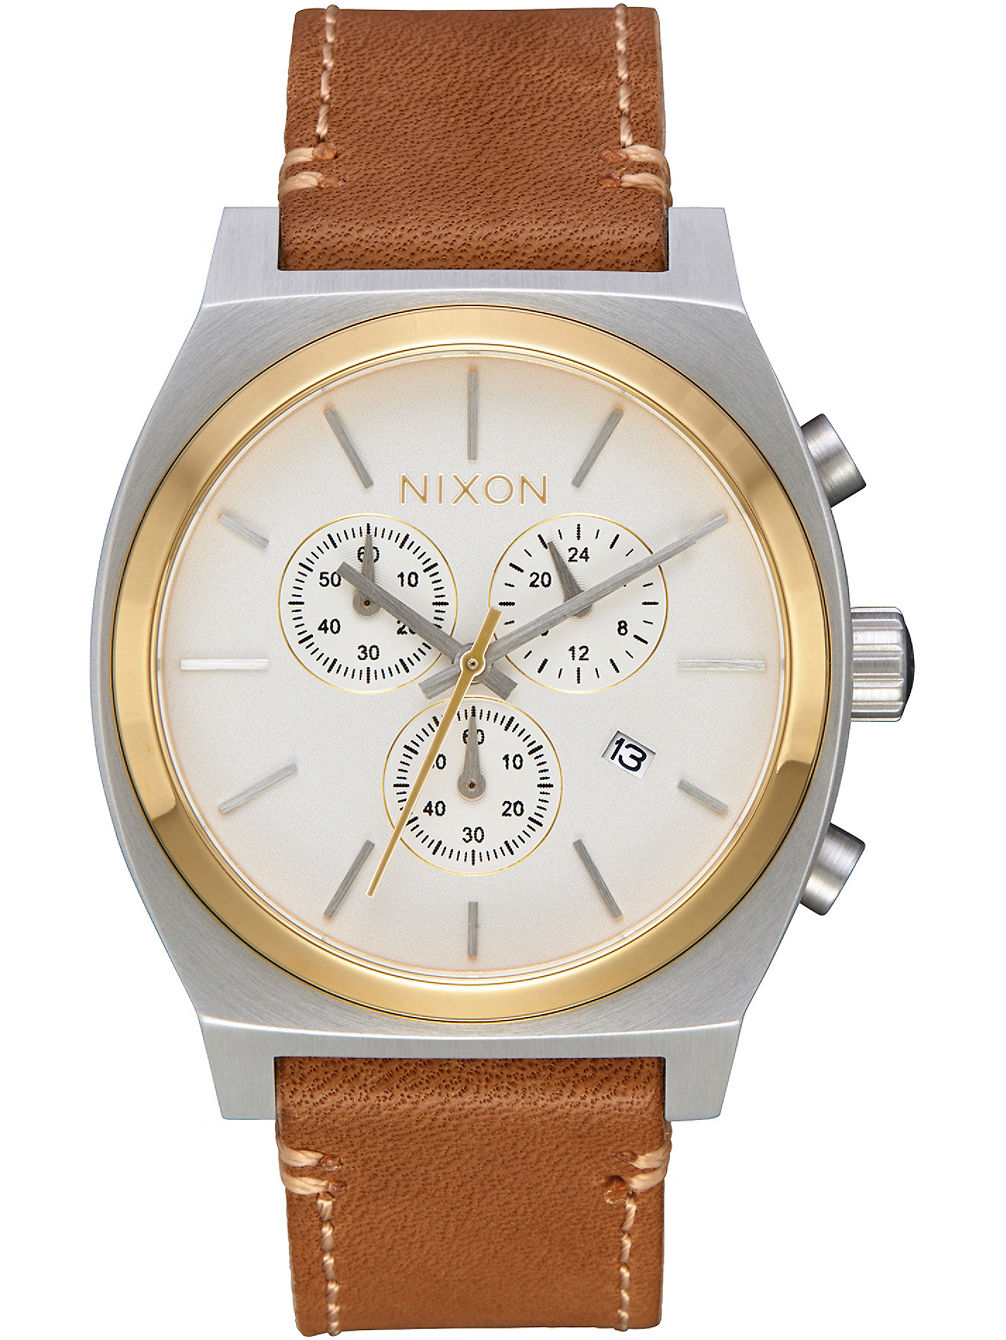 The Time Teller Chrono Leather